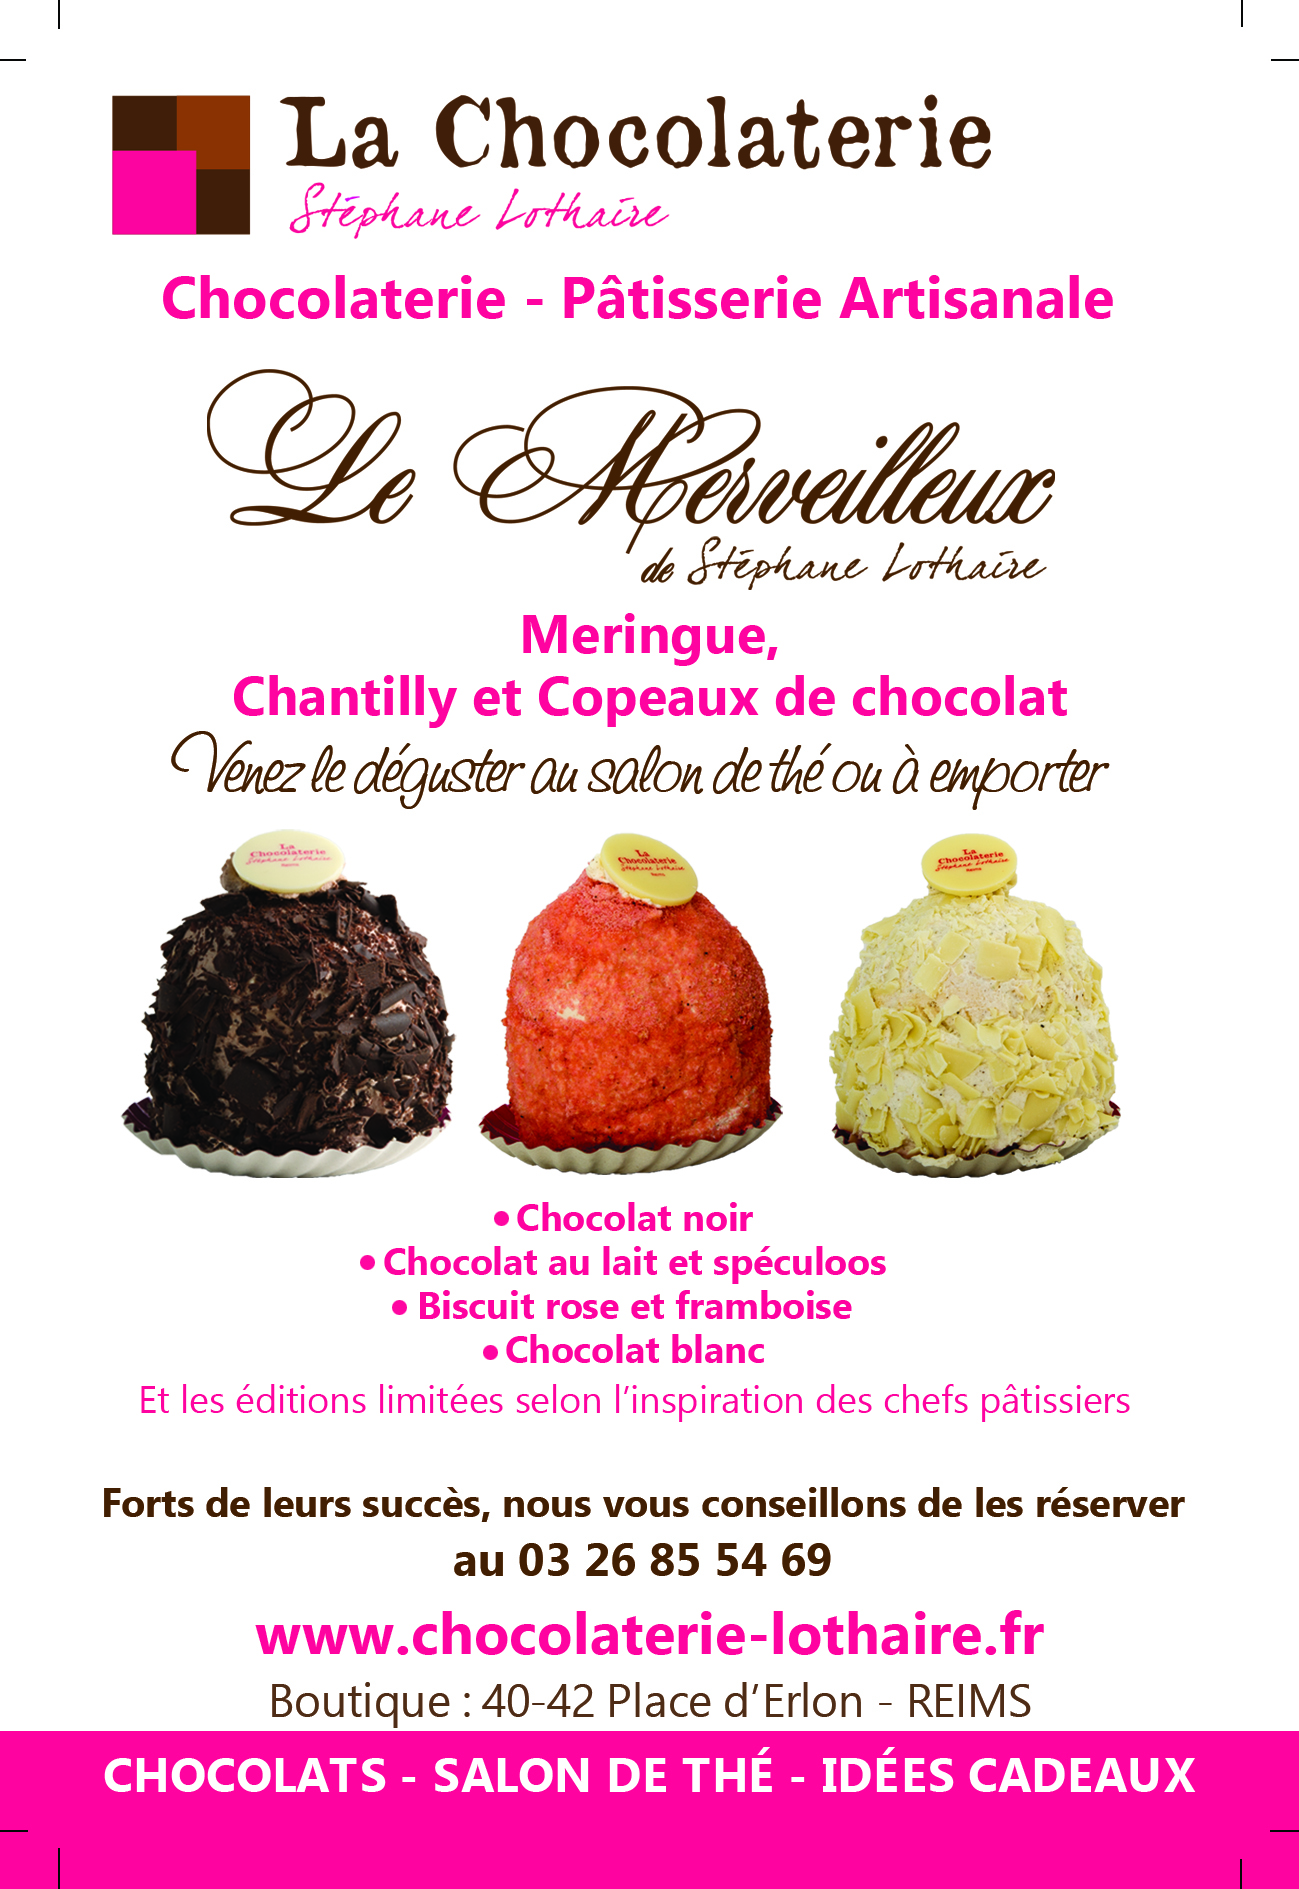 Merveilleux - Chocolaterie Lothaire - Flyer recto